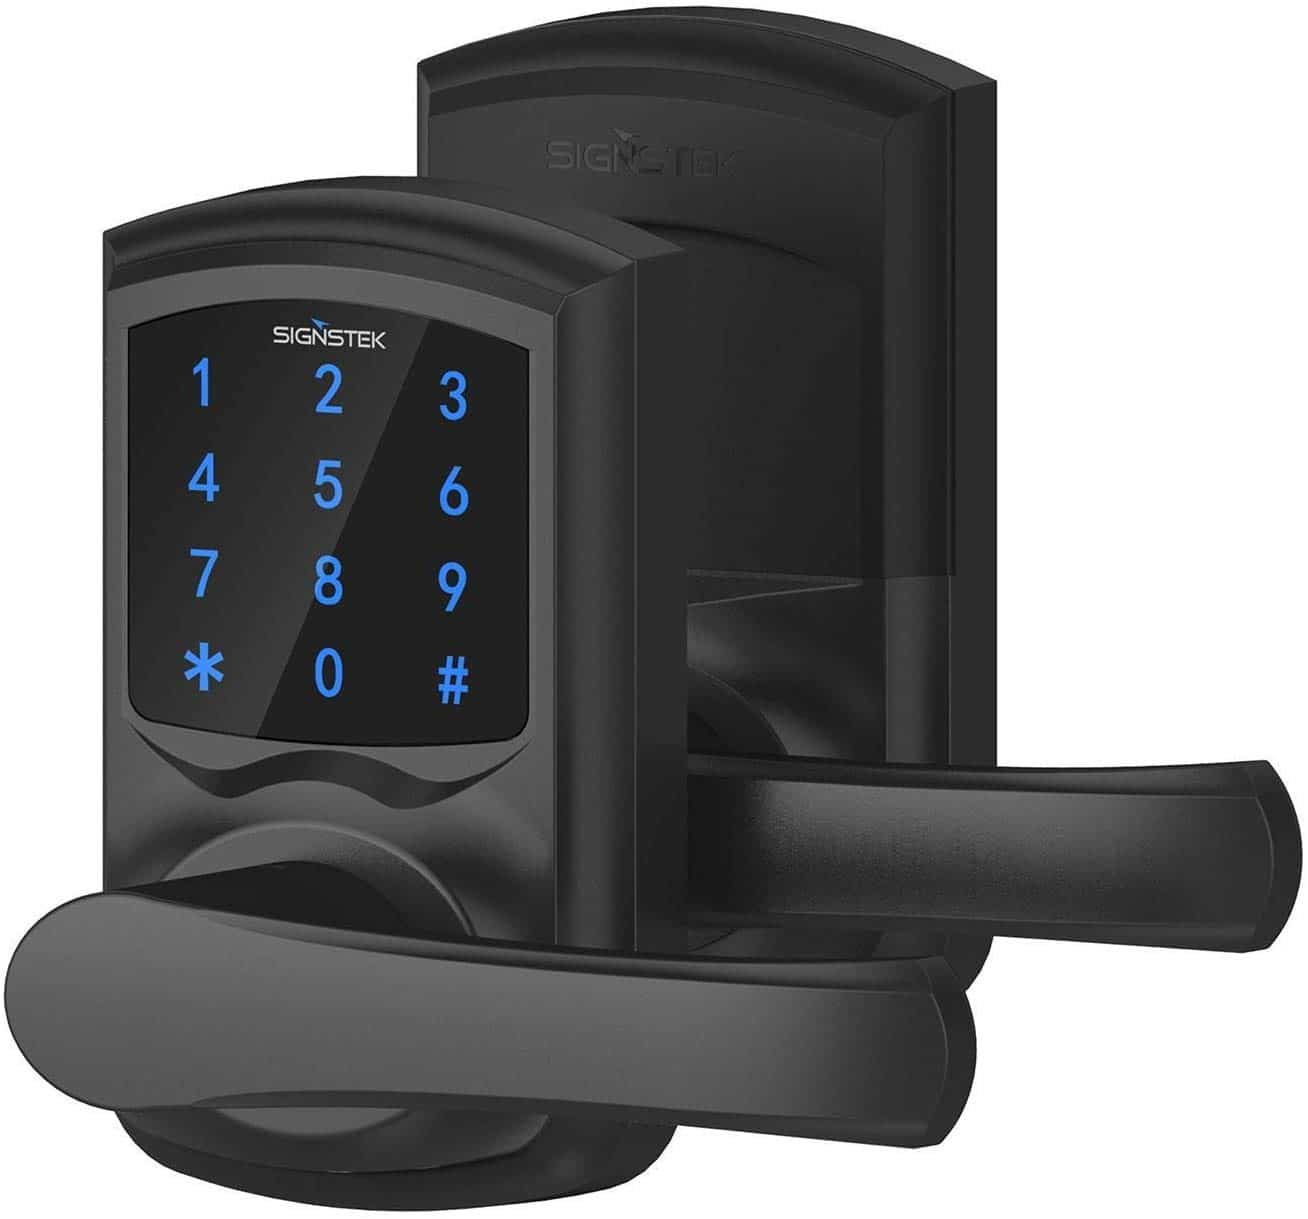 Signstek Digital Electronic Door Lock.